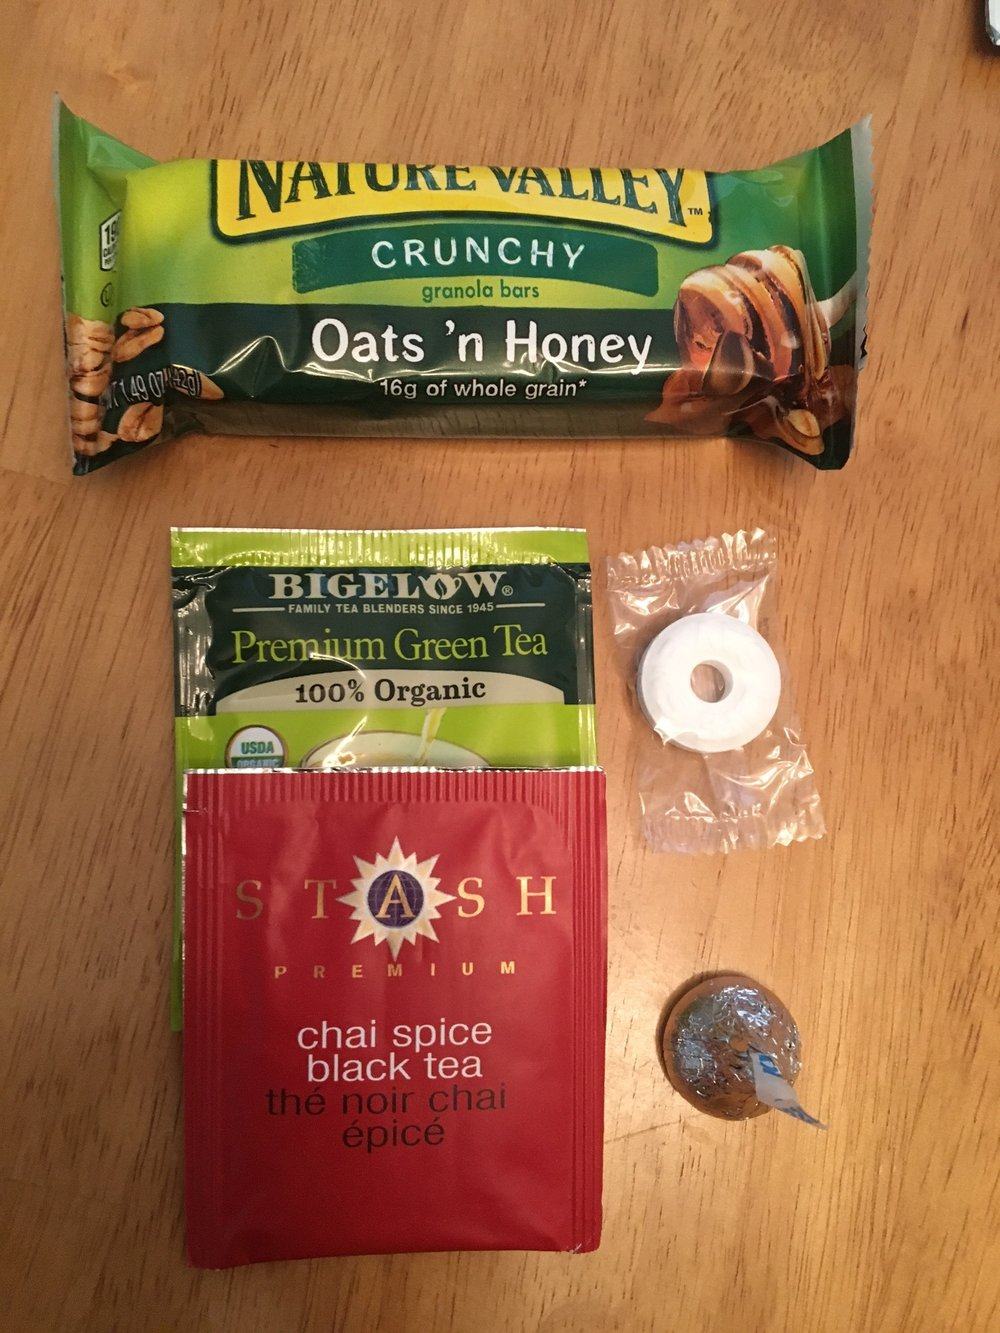 Tea Bags, Granola Bar, Tissues (not pictured), hersey kisses, and some mints